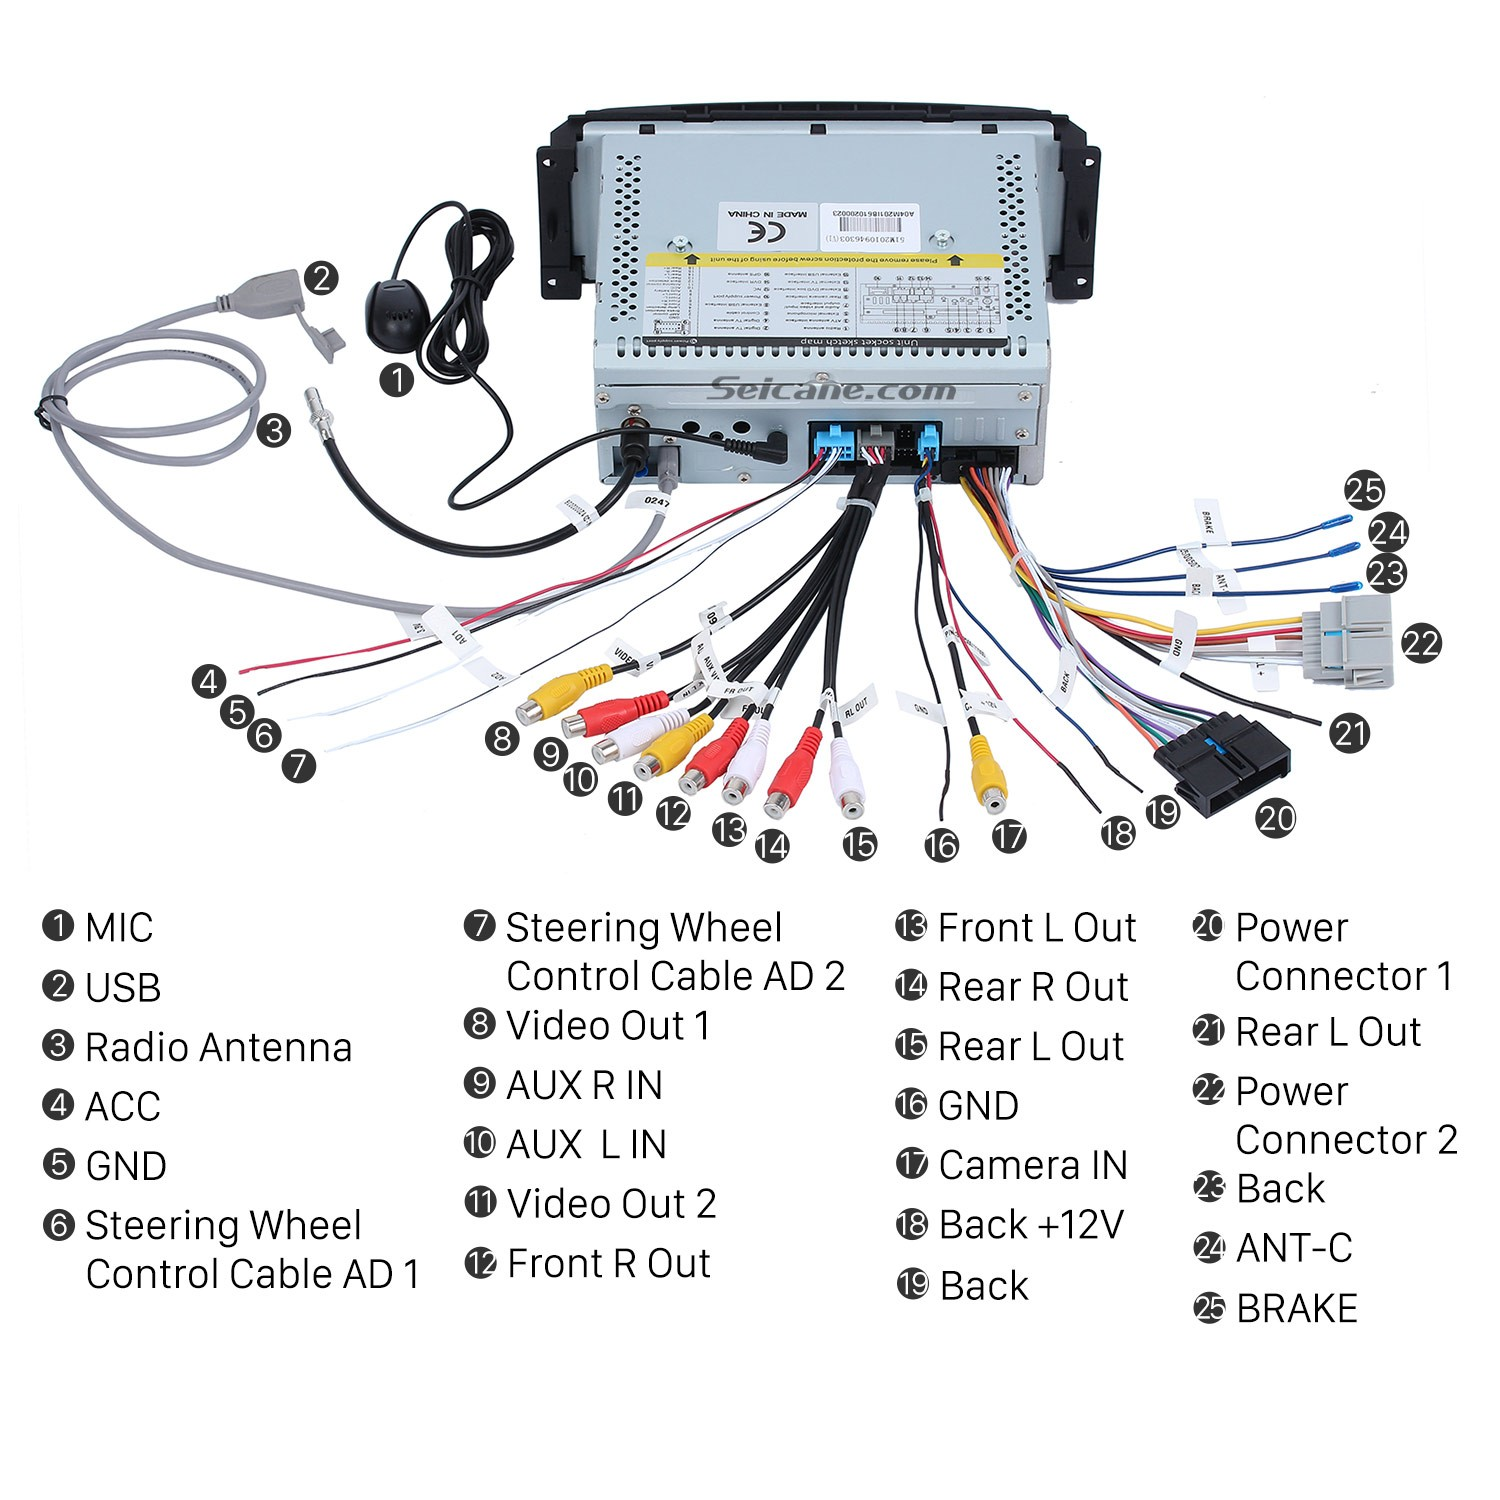 8. Connect the harnesses to the back of the new Seicane car radio 2002 2007 Jeep Liberty Stereo how to install a 2002 2007 jeep liberty stereo to fix radio Ford Stereo Wiring Harness at bayanpartner.co